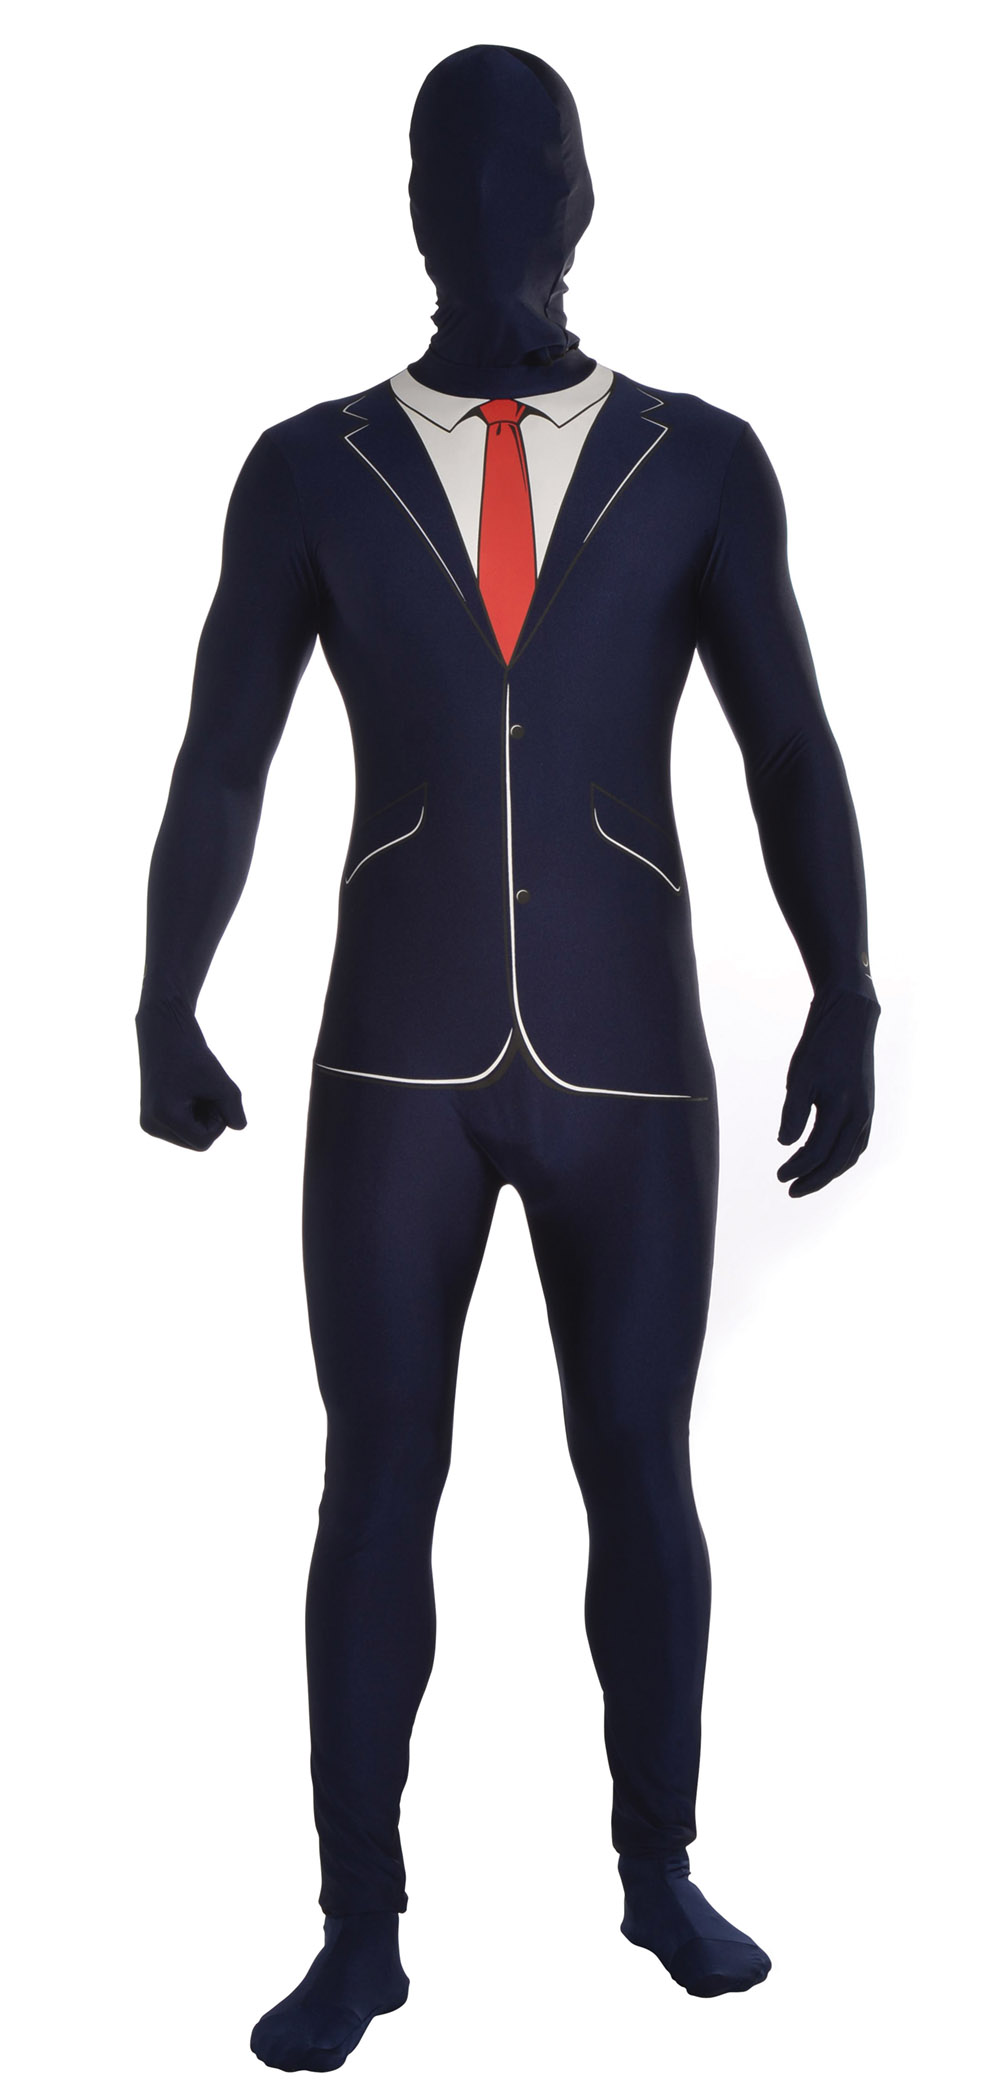 Business Suit Fancy Dress Costume Disappearing Man Jumpsuit Halloween Outfit